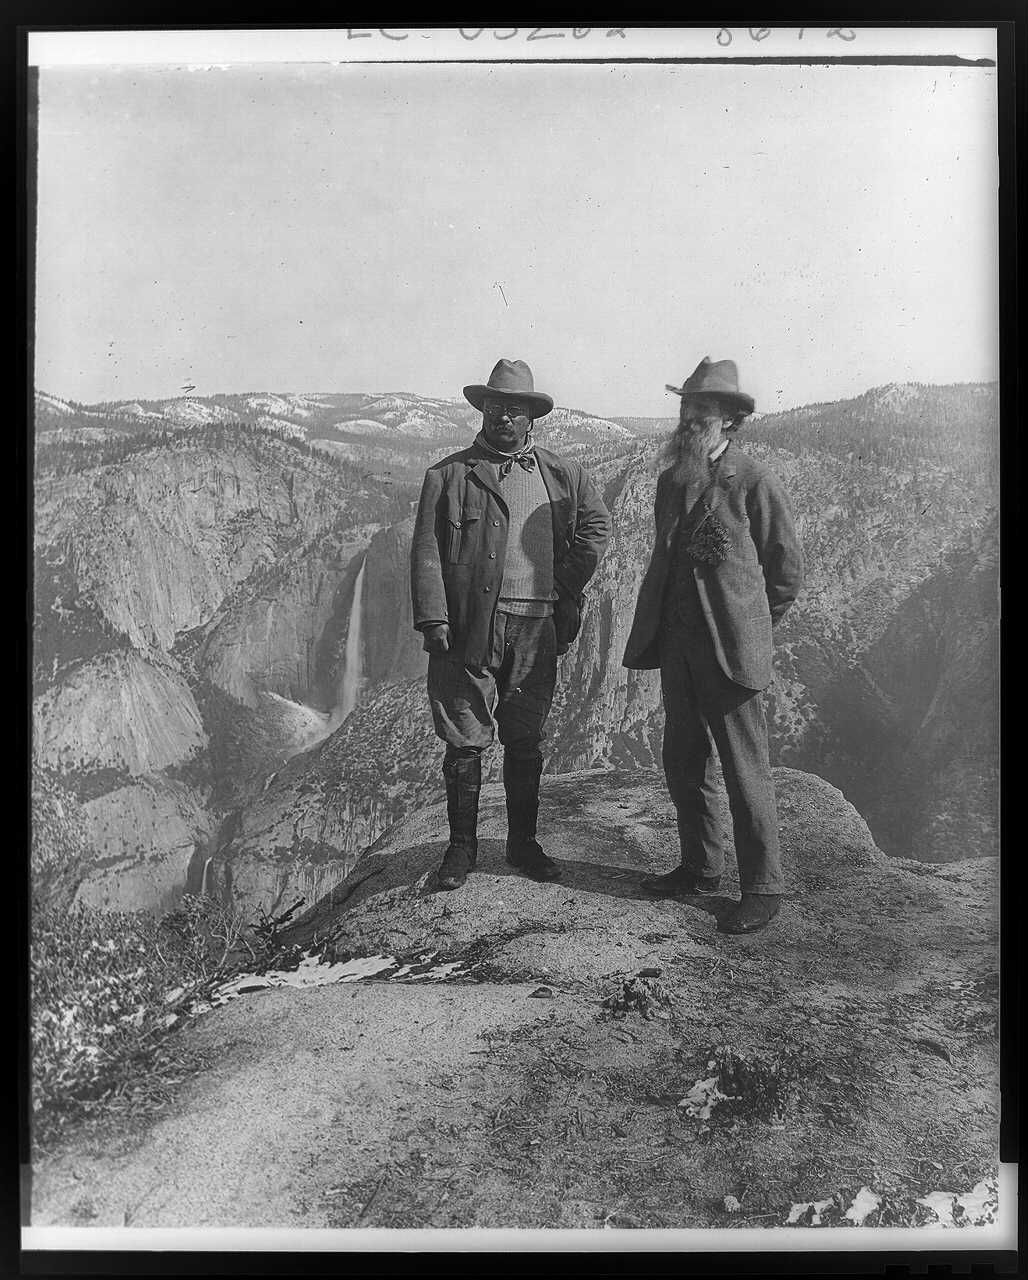 Theodore Roosevelt And John Muir At Glacier Point Yosemite By Unknown Artist